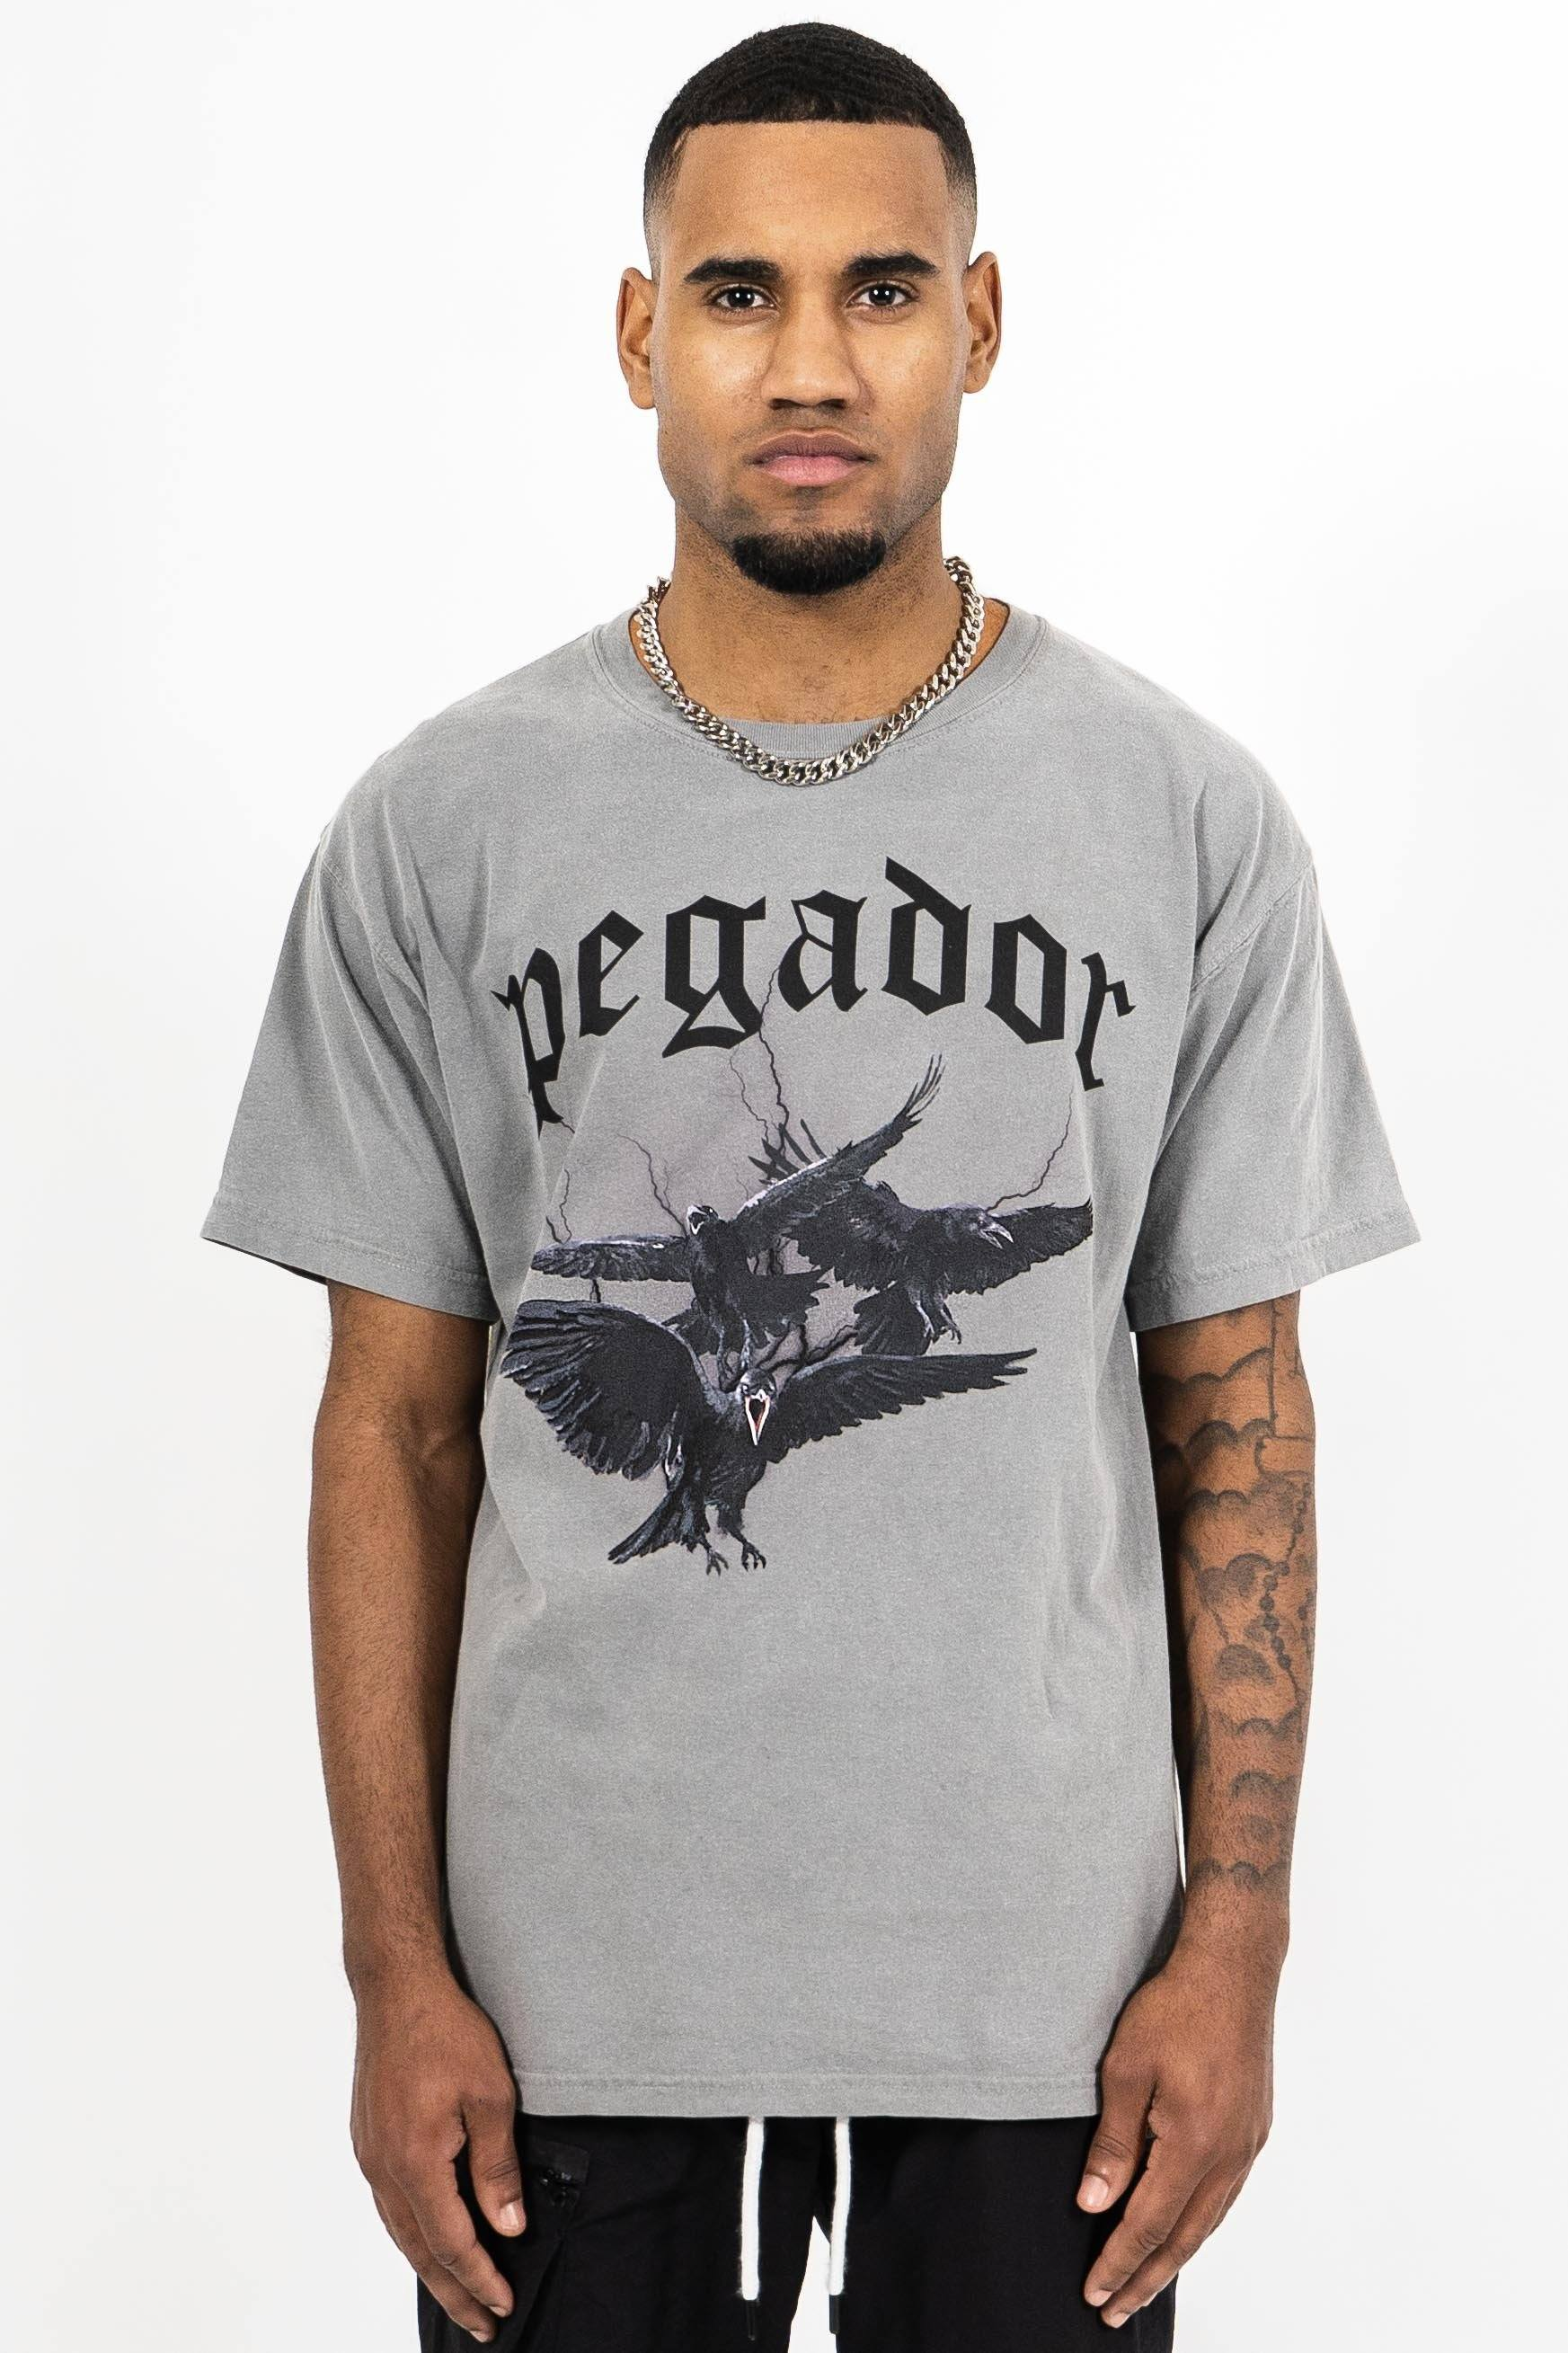 Colon Oversized Tee Washed Grey - PEGADOR - Dominate the Hype